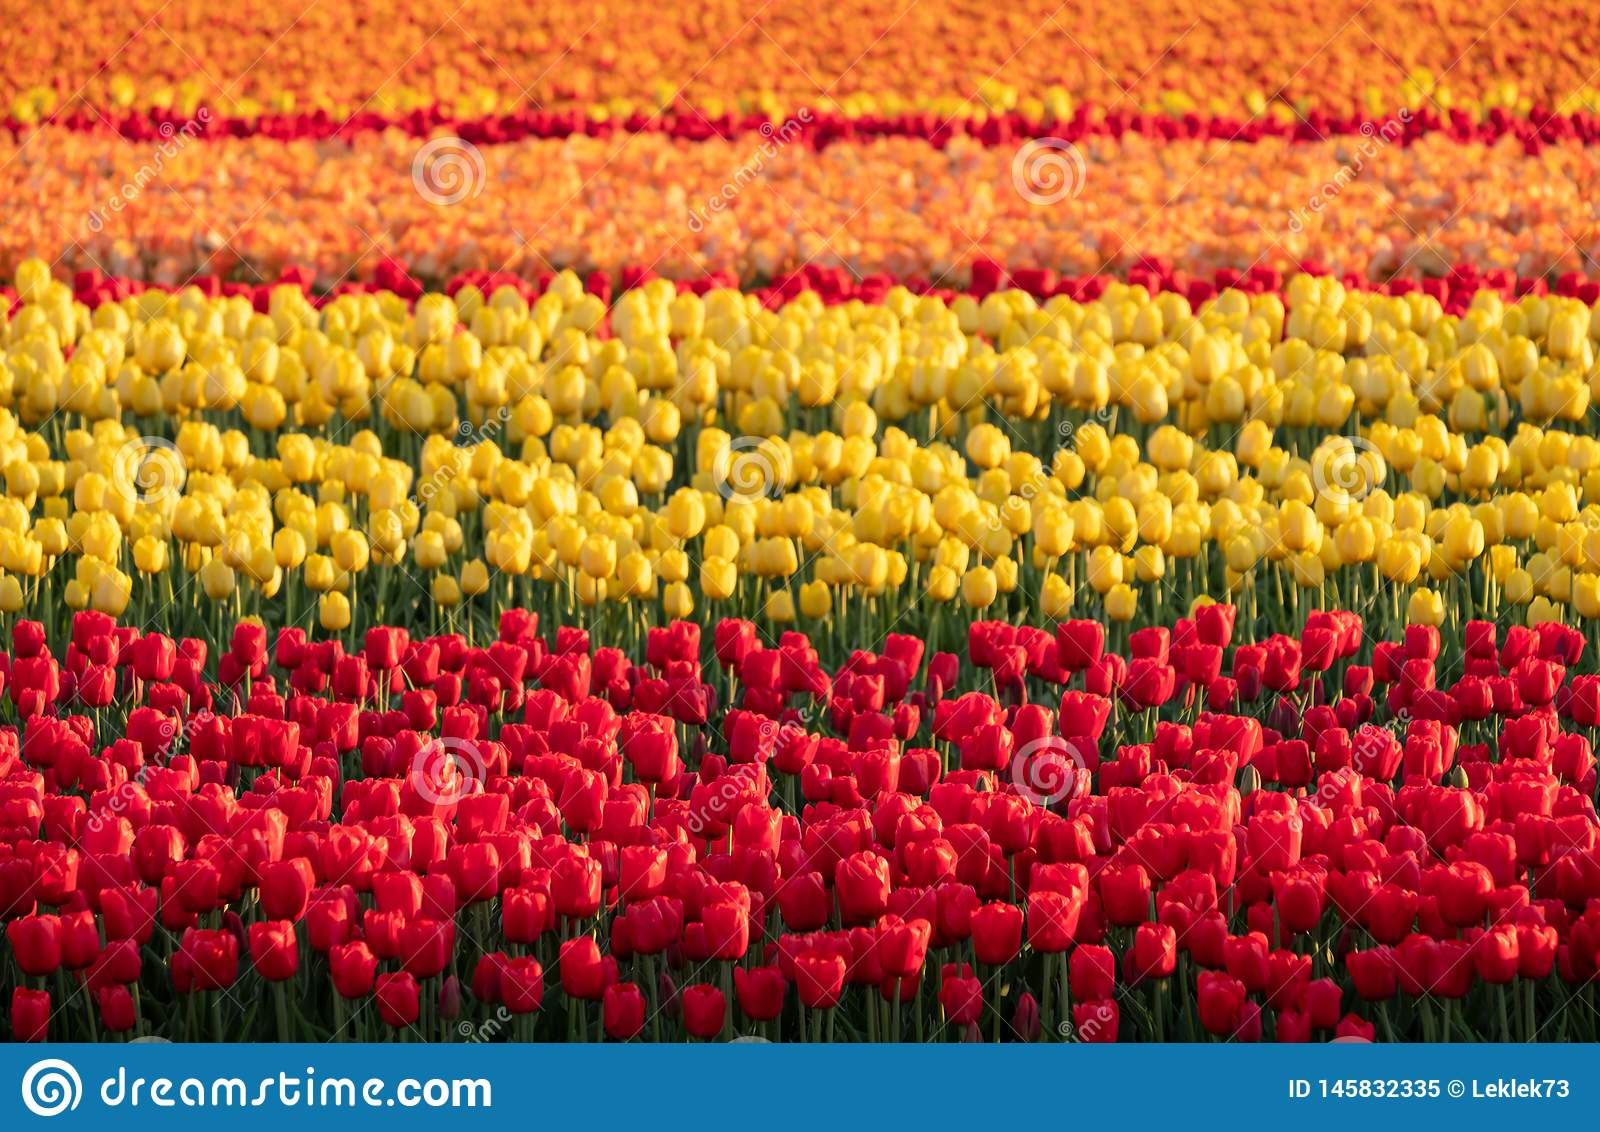 Stripes of colour: brightly coloured tulips reflect the evening light in a flower field near Lisse, Netherlands.